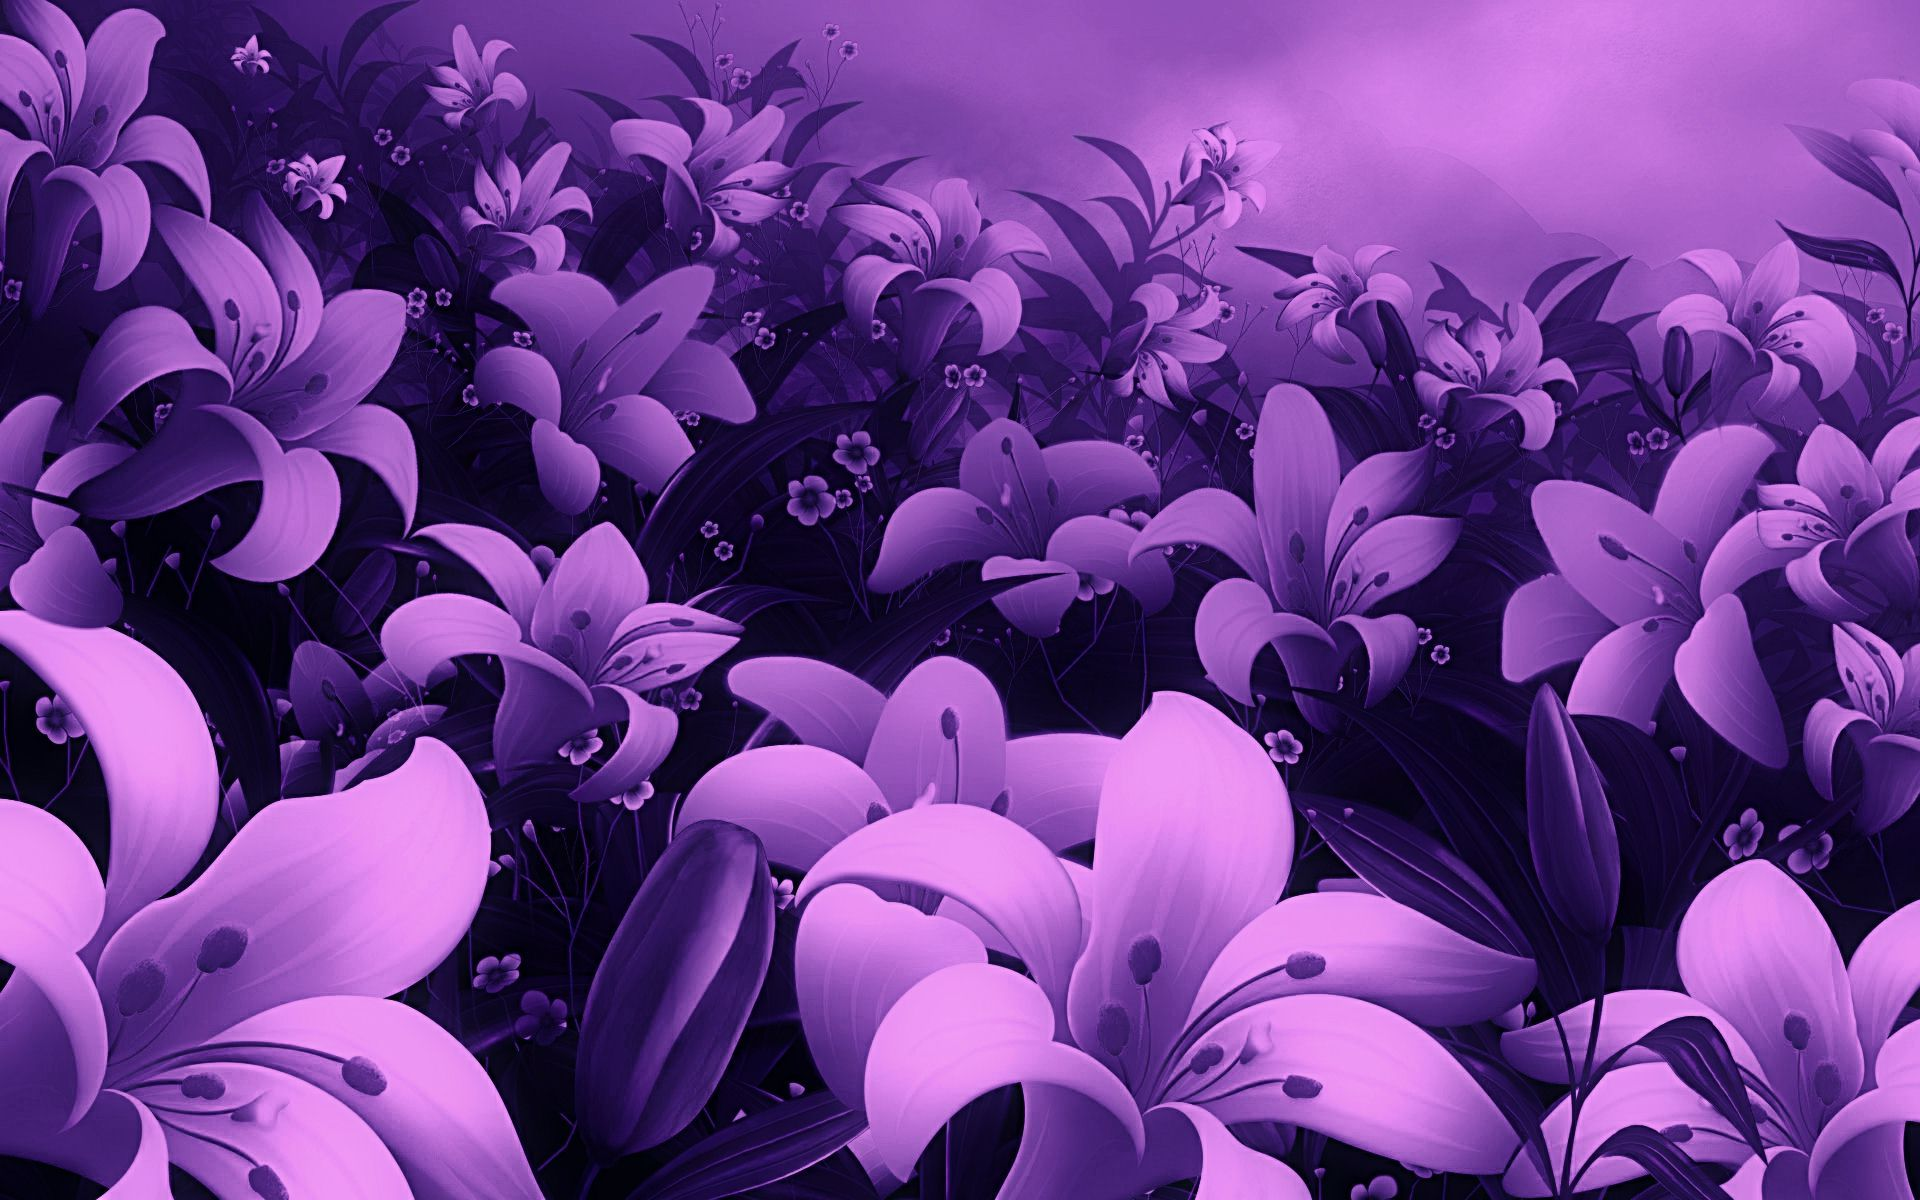 New Flowers Full Screen Hd Photo High Quality Violet Flower ...